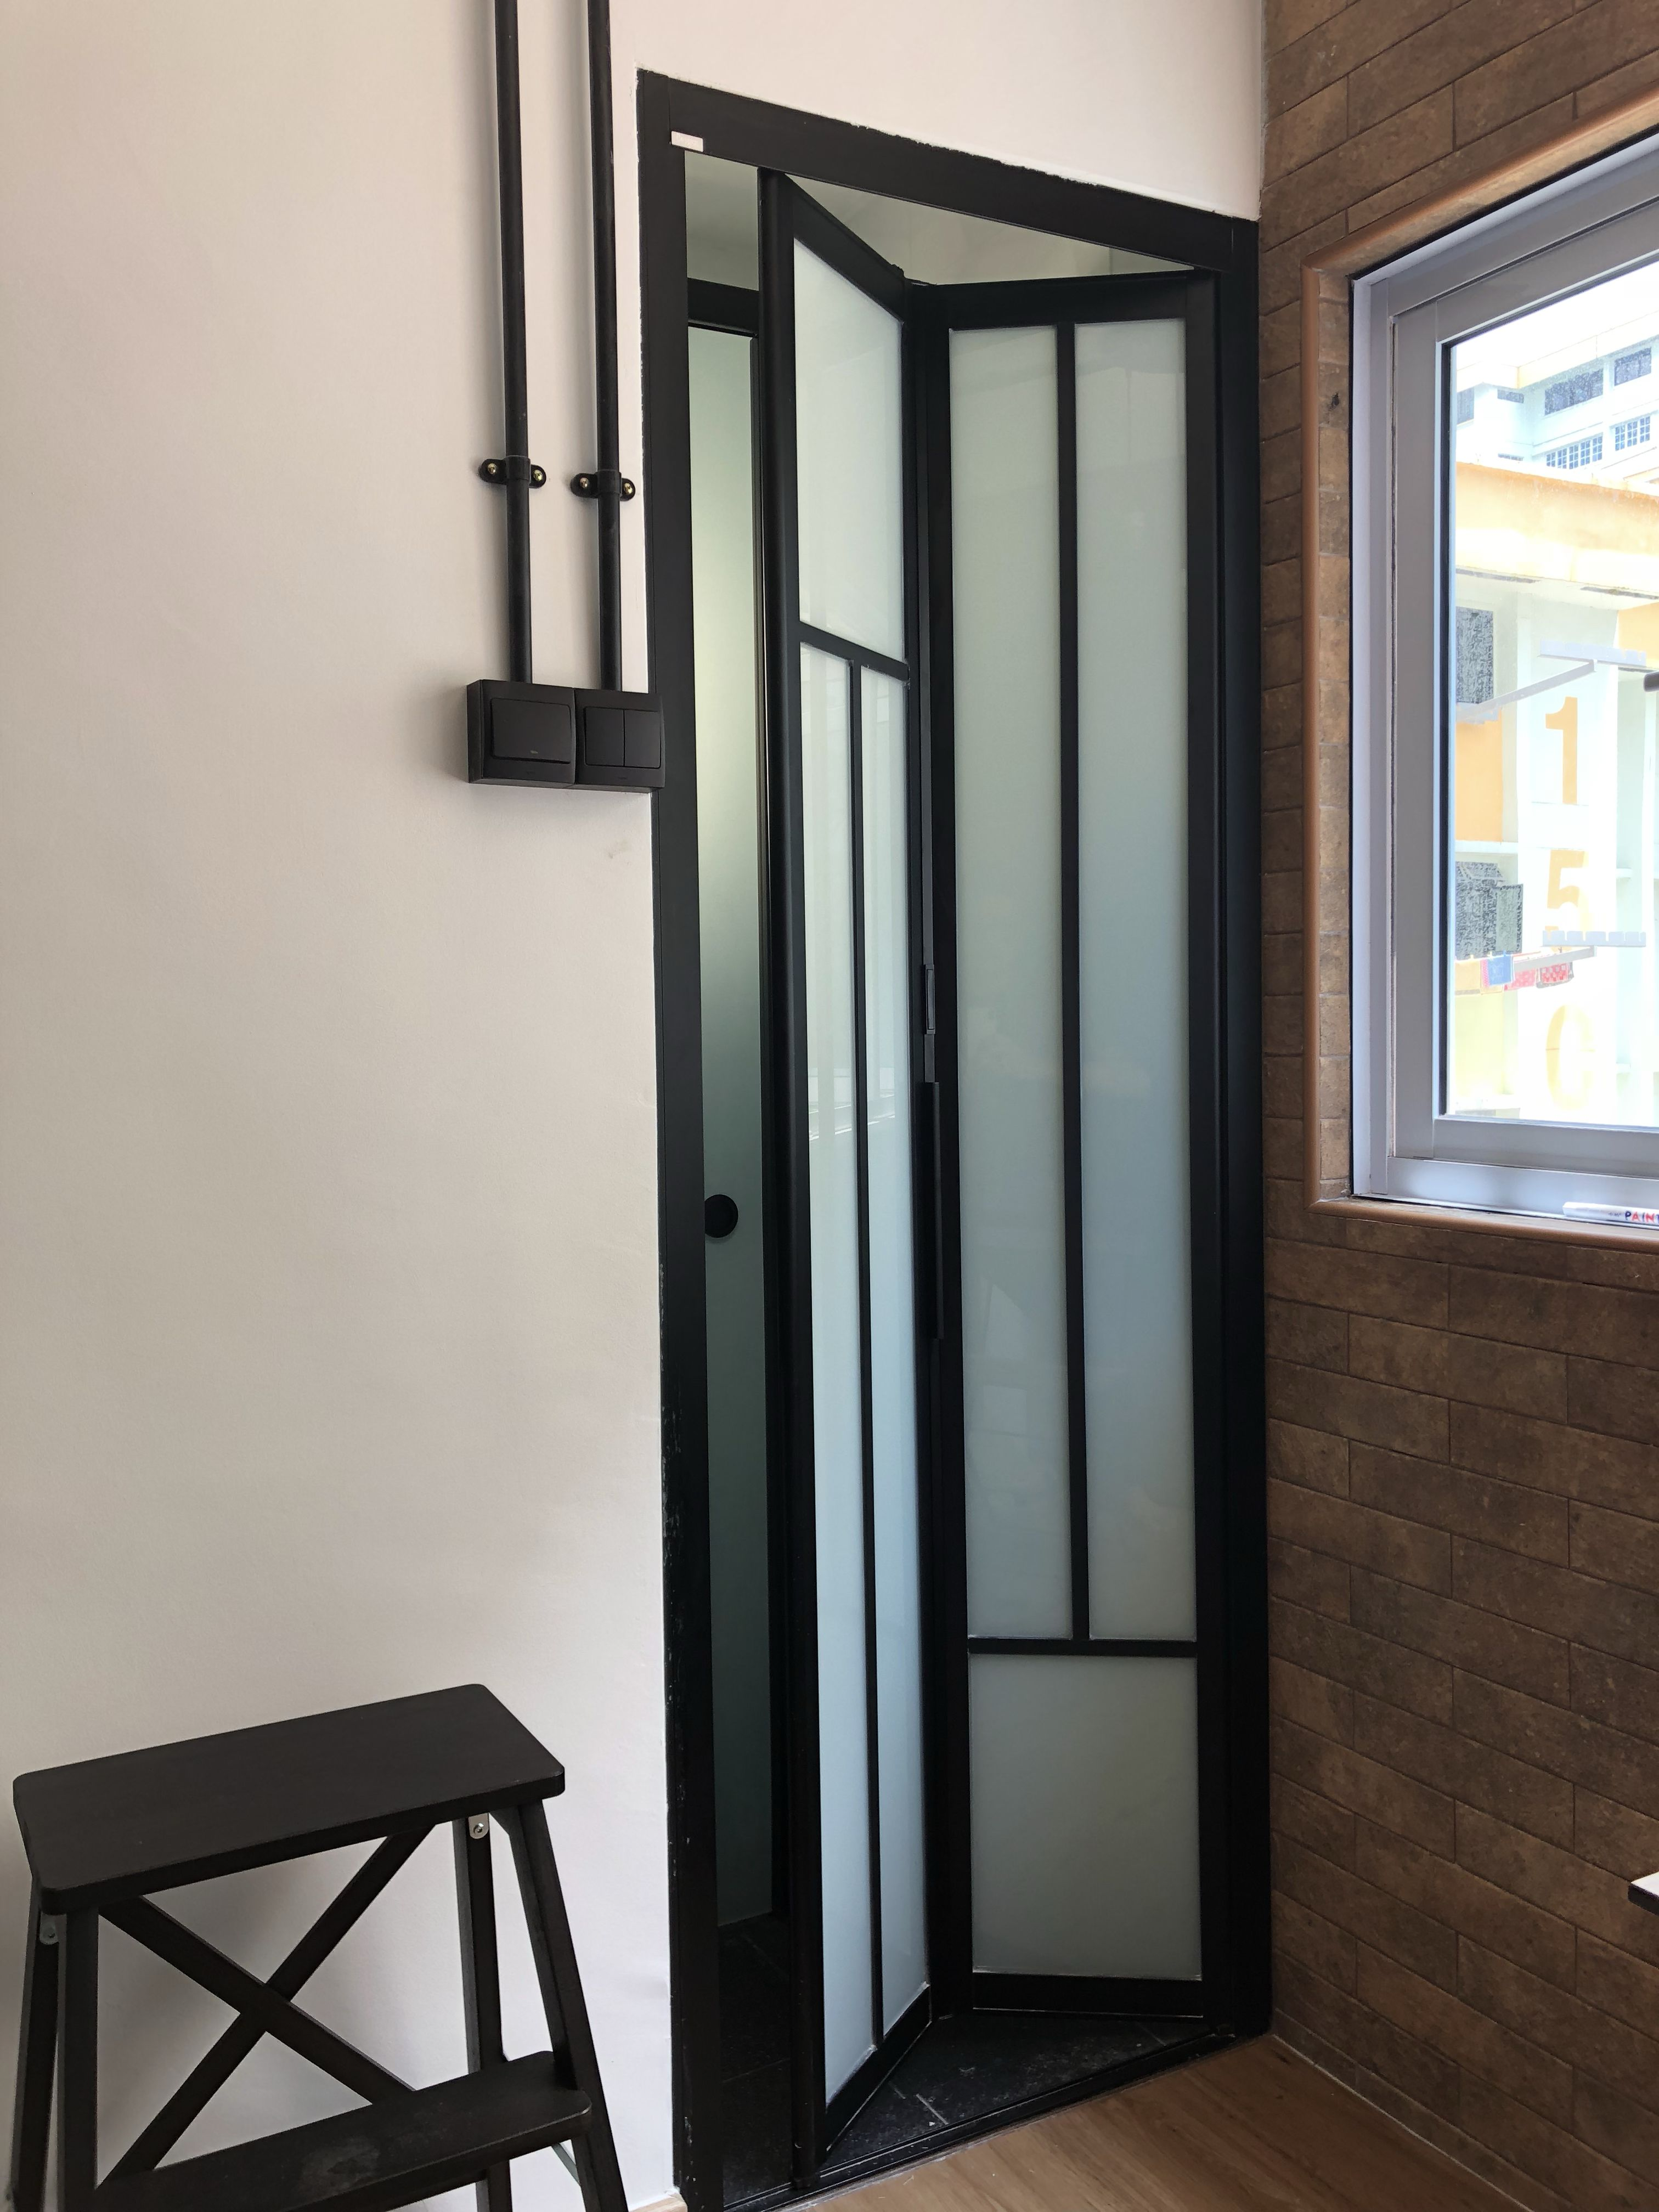 Ezi Doors Are The Ideal Solution If Space Is At A Premium In Your